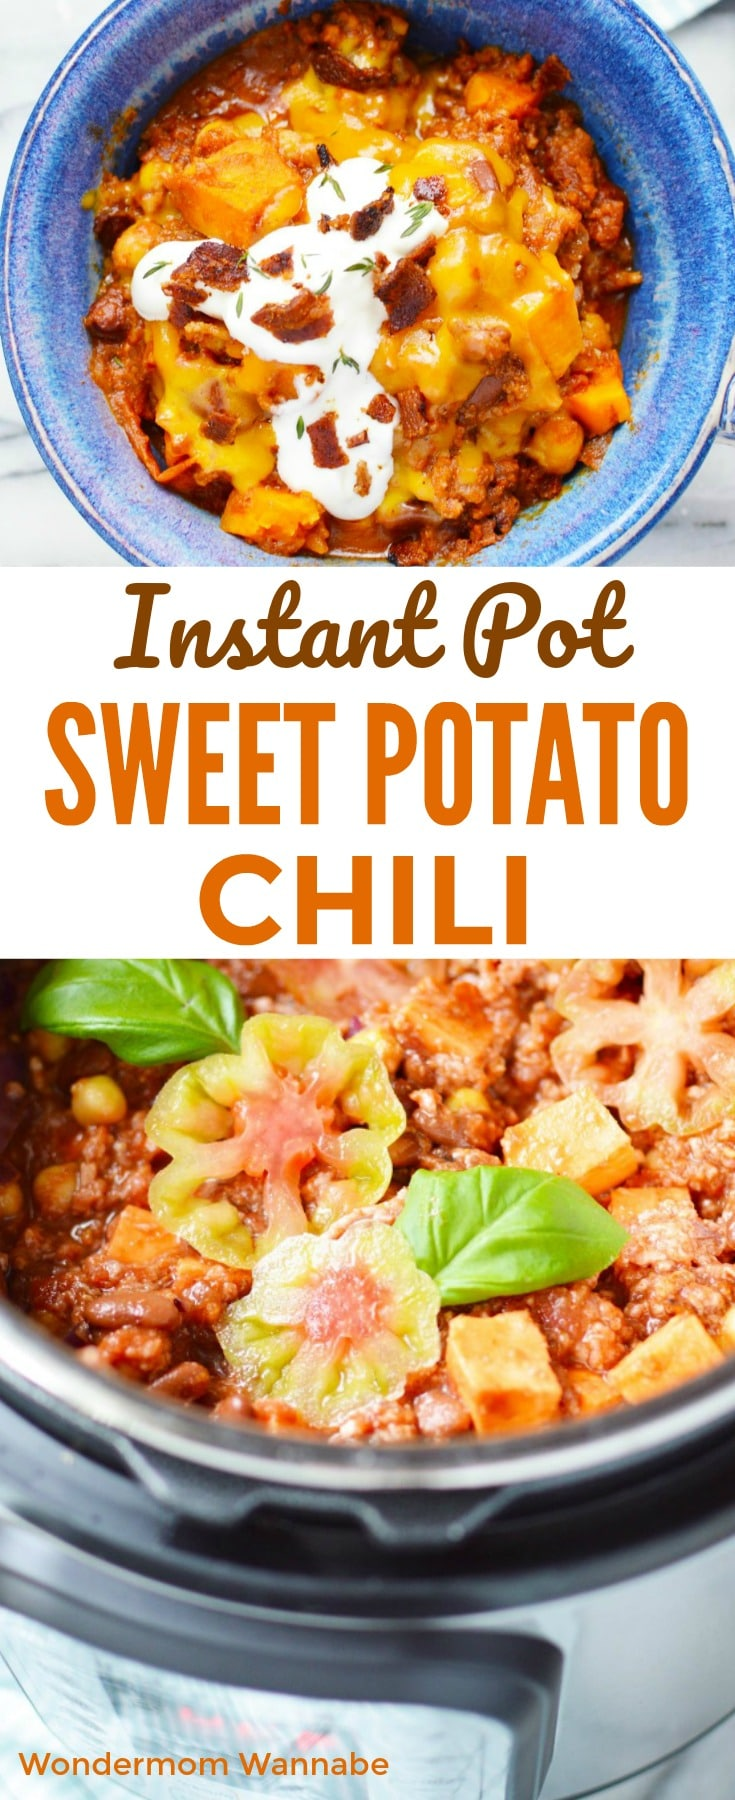 collage of sweet potato chili in a blue bowl or in an instant pot with title text reading Instant Pot Sweet Potato Chili